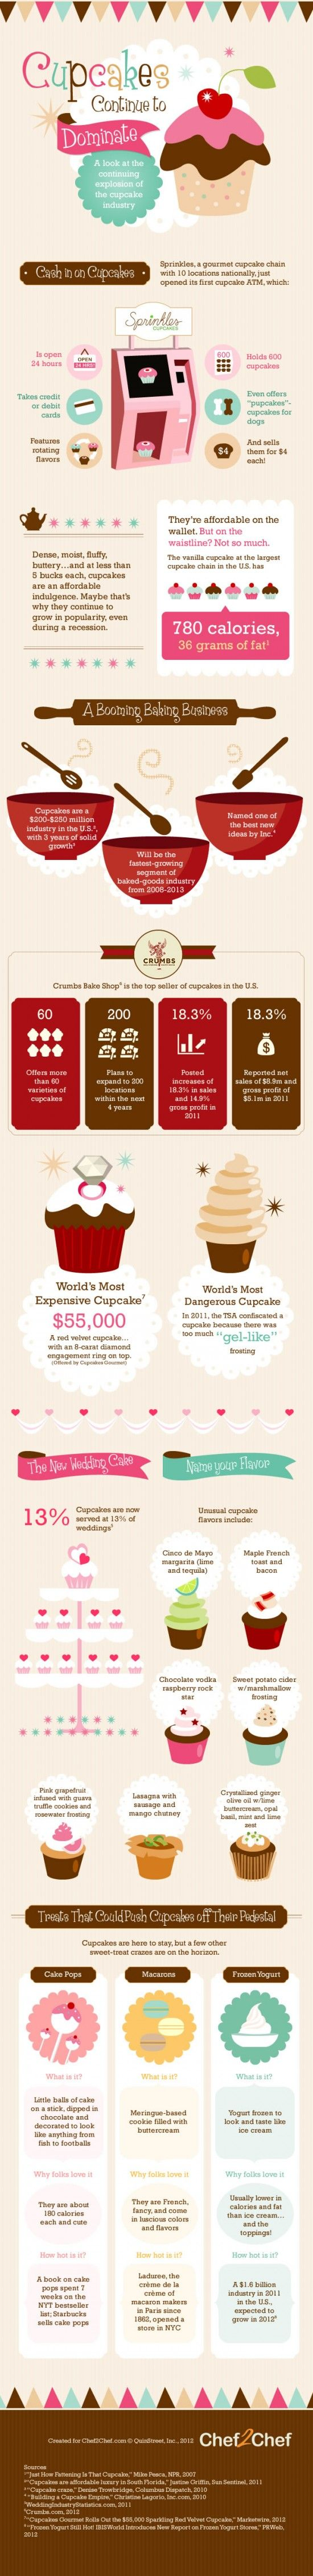 """The world is in love with cupcakes. Sprinkles, a U.S. cupcake chain, just released cupcake ATMs. There's even a TV show, """"Cupcake Wars,"""" on Food Network, dedicated to finding the best cupcakes in the world."""